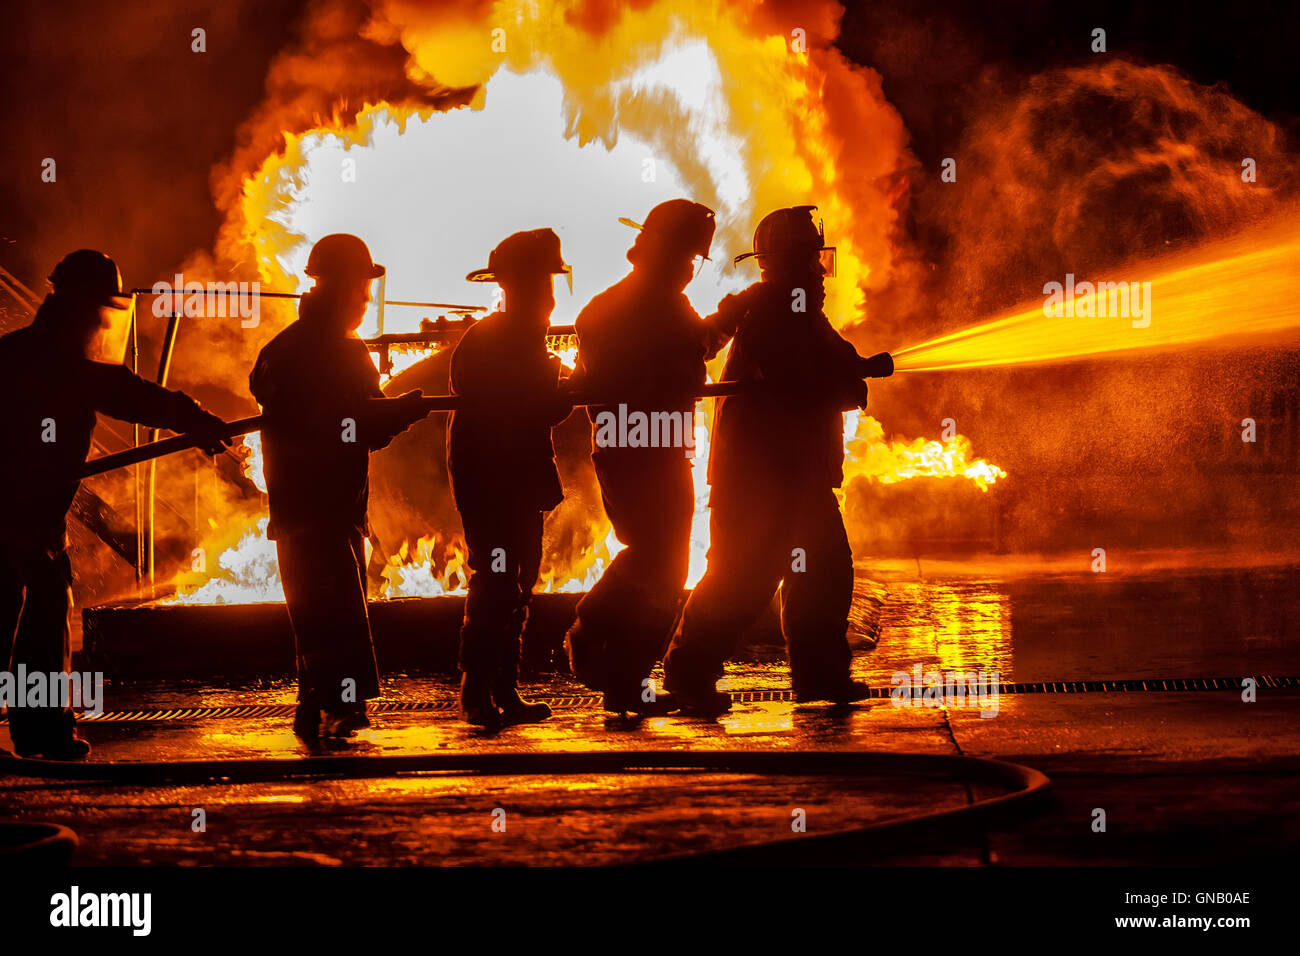 Group of firefighters moving towards fire with hose - Stock Image